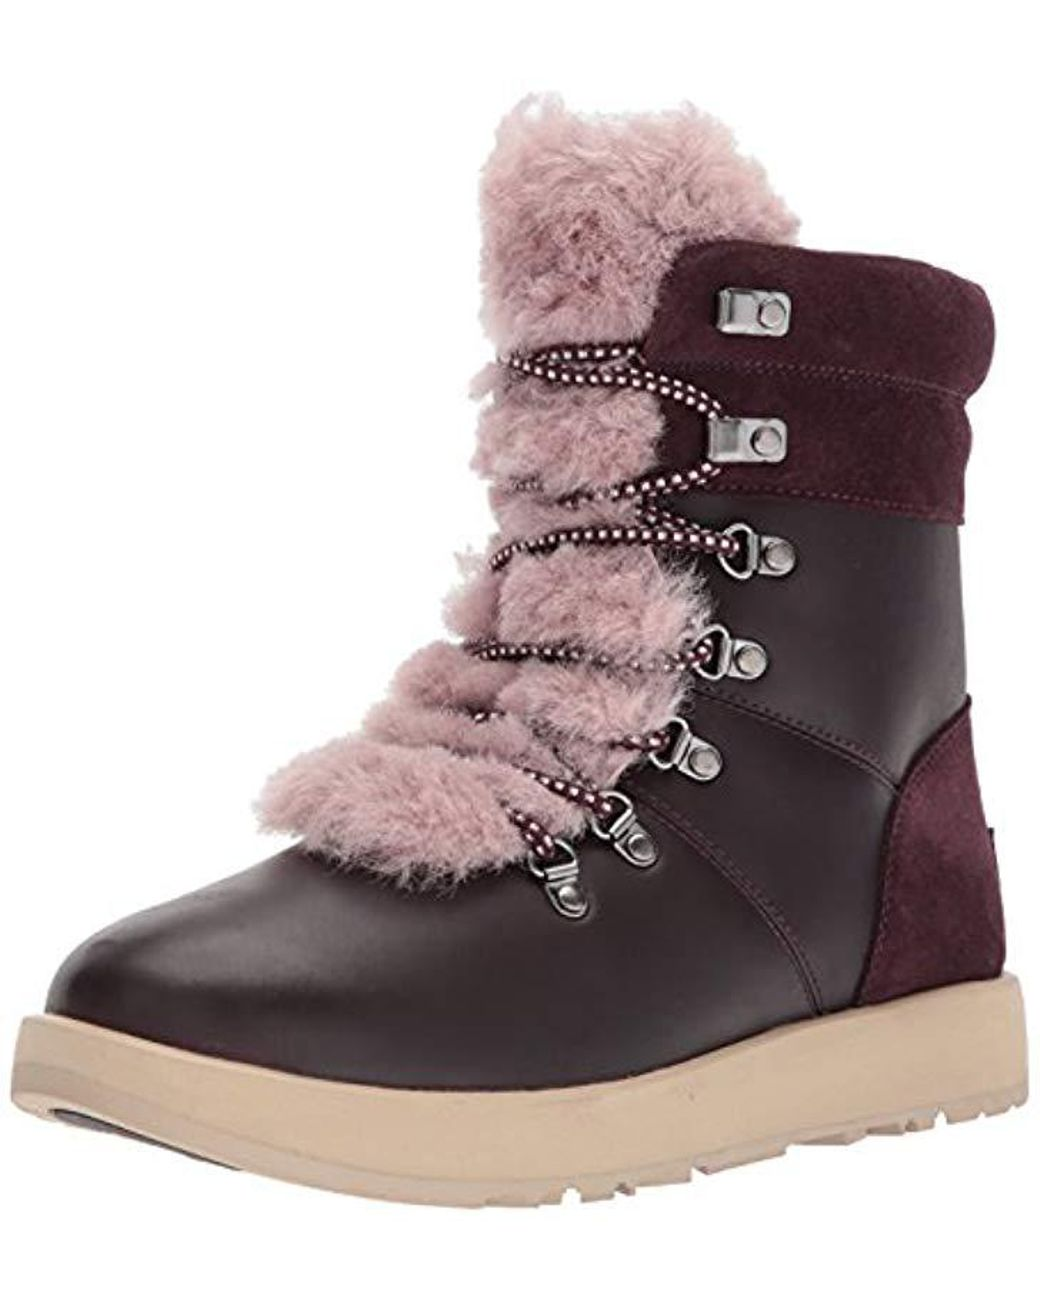 1b8c14febcb9 Lyst - UGG Women s Viki Waterproof Leather Lace Up Boots - Save 10%